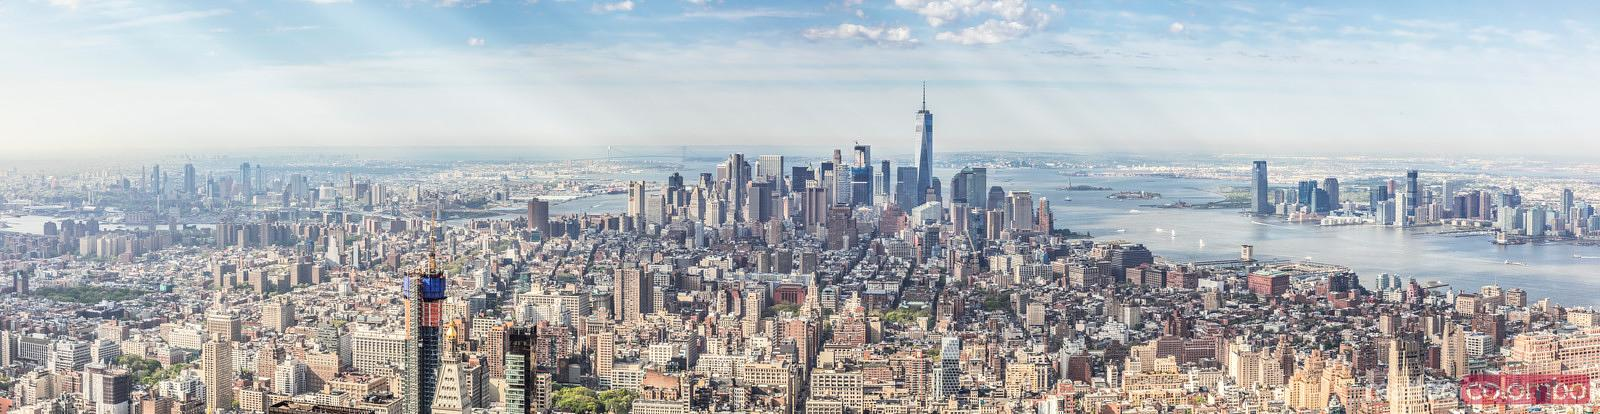 Aerial panorama of lower Manhattan at daytime, New York, USA